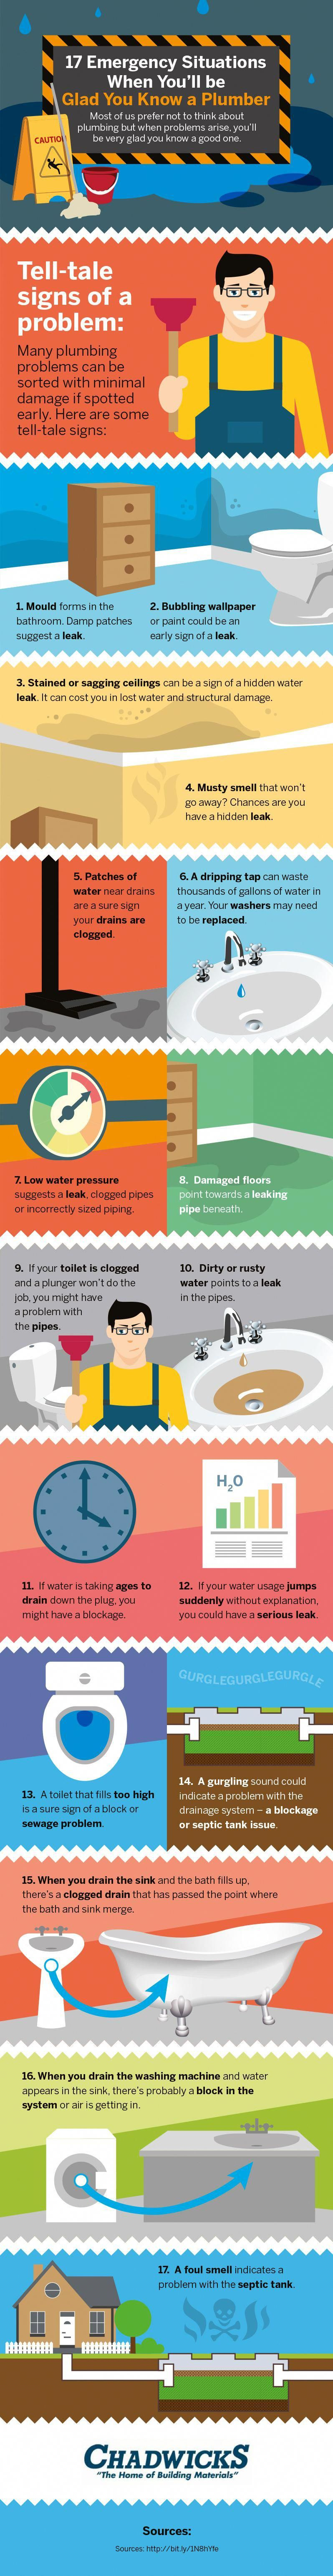 Kitchen Sink Plumbing Diagram Parker And Sons Plumbing Phoenix Plumbing Courses Online Plumbing Book Hindi Plumbing Problems Plumbing Plumbing Companies